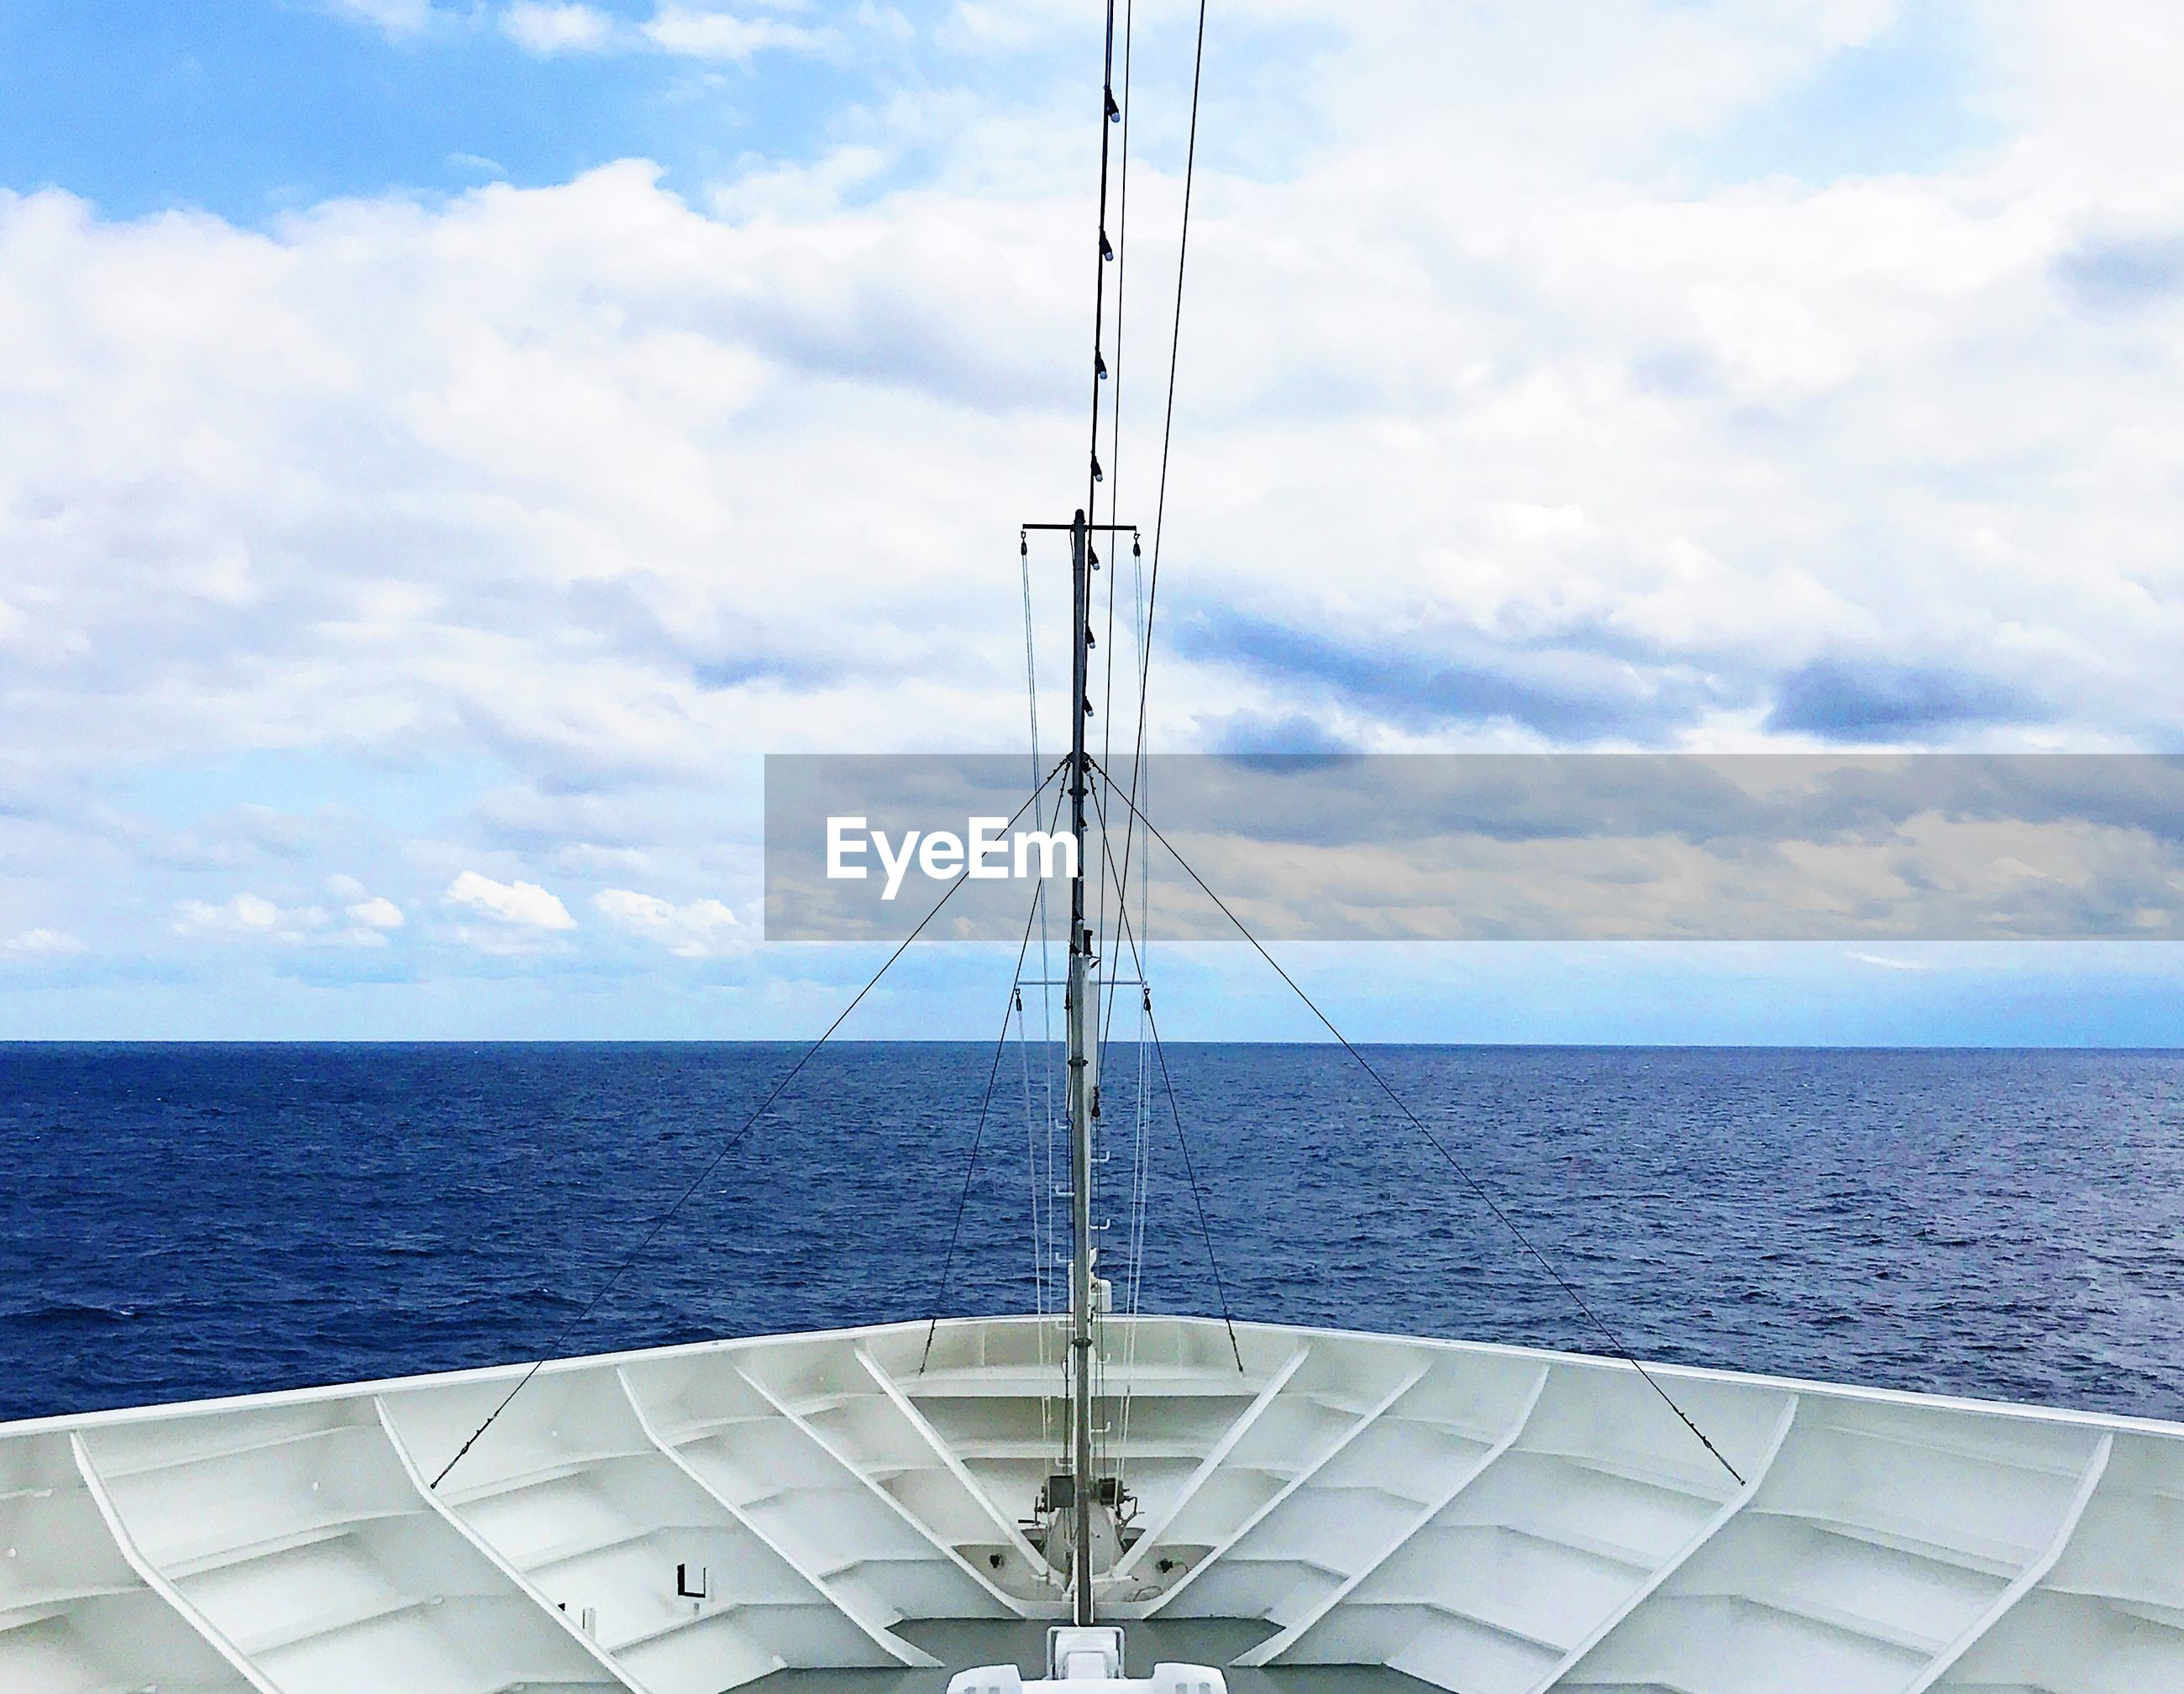 Cropped image of nautical vessel in sea against cloudy sky